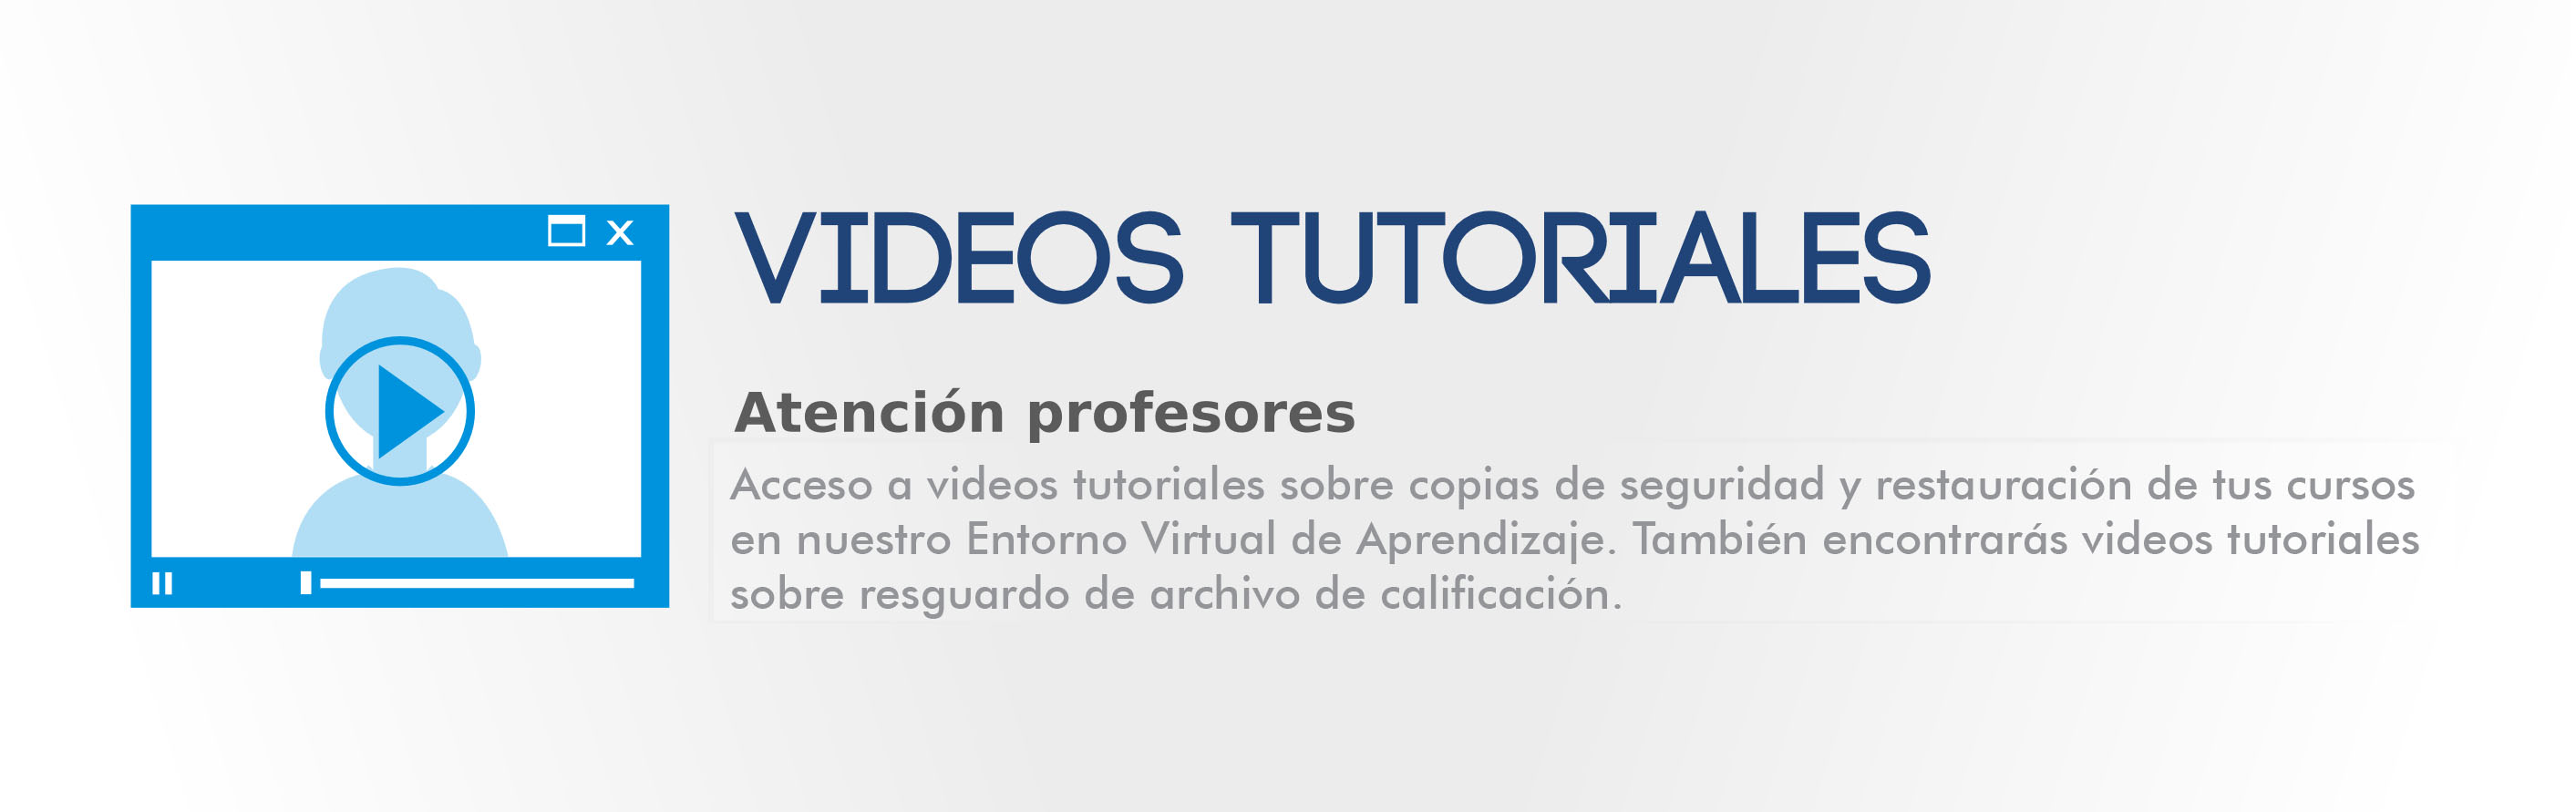 banner_video_tutoriales